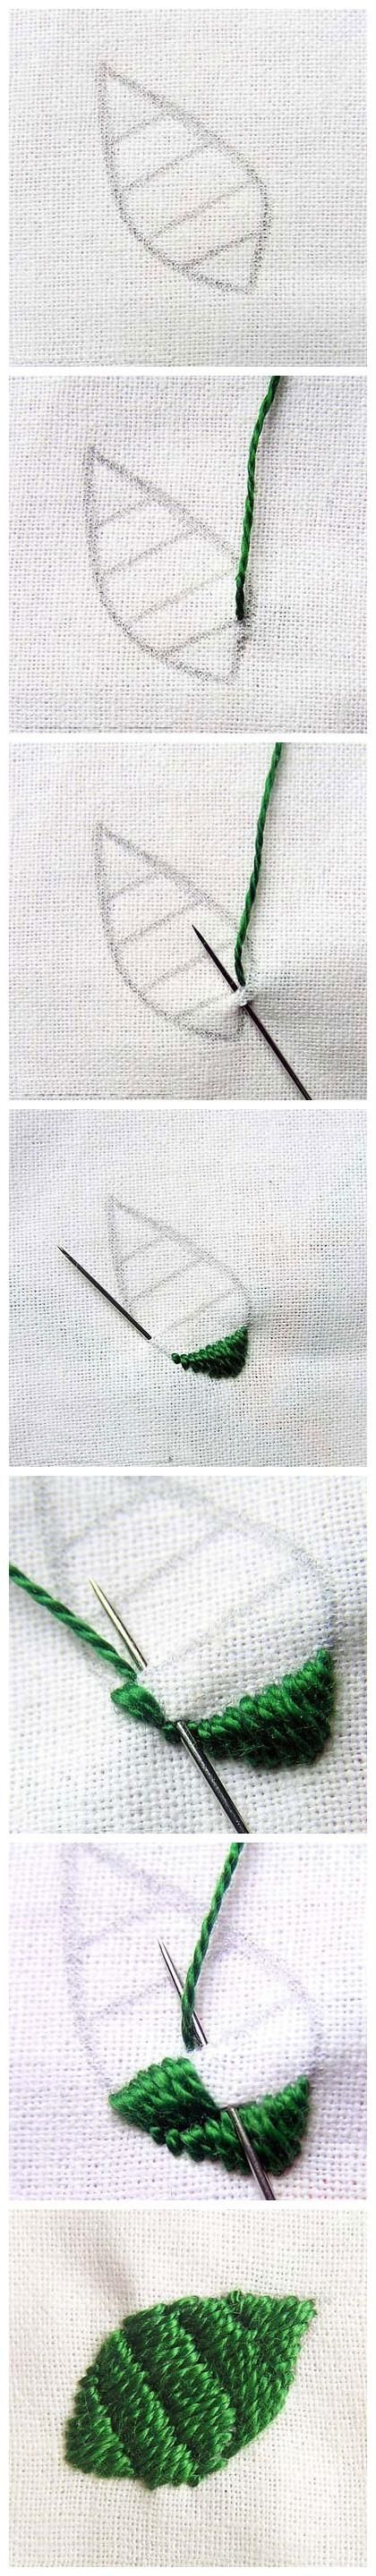 DIY Another embroidery leaf